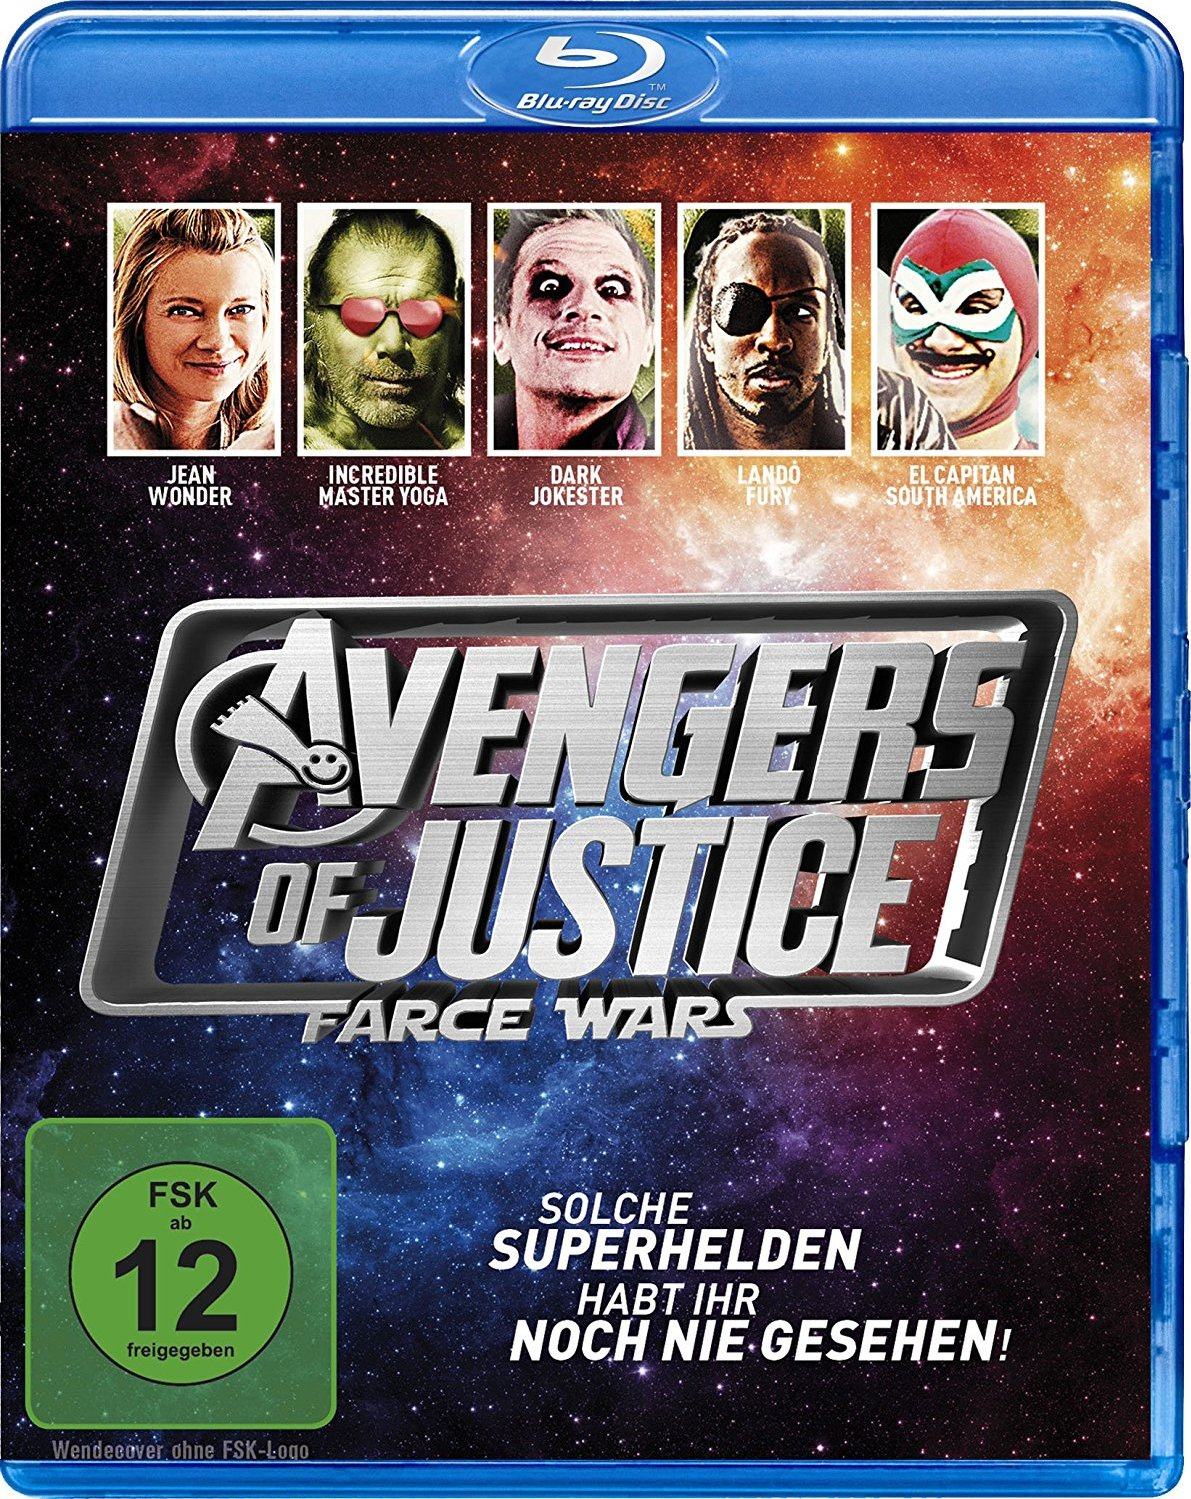 avengers of justice farce wars (2018)